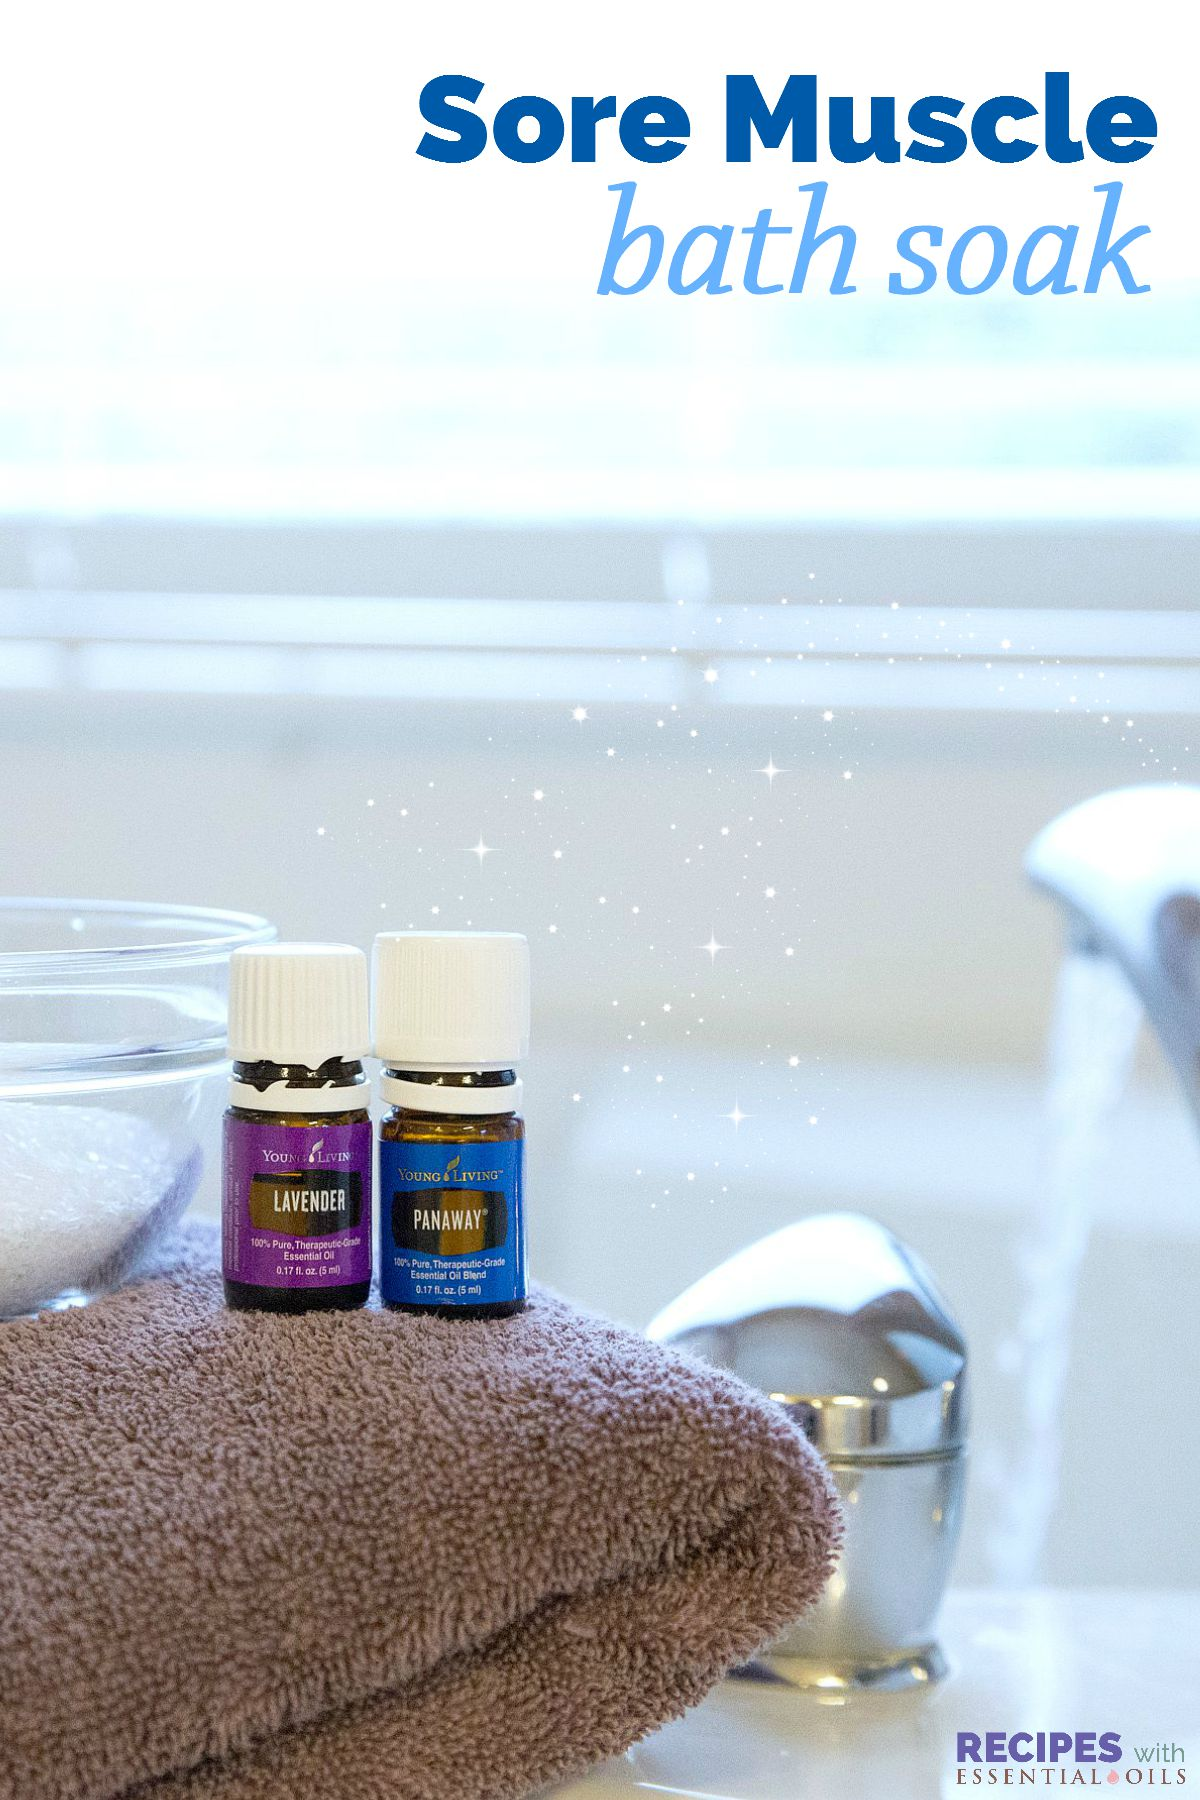 Sore Muscle Soak with Essential Oils